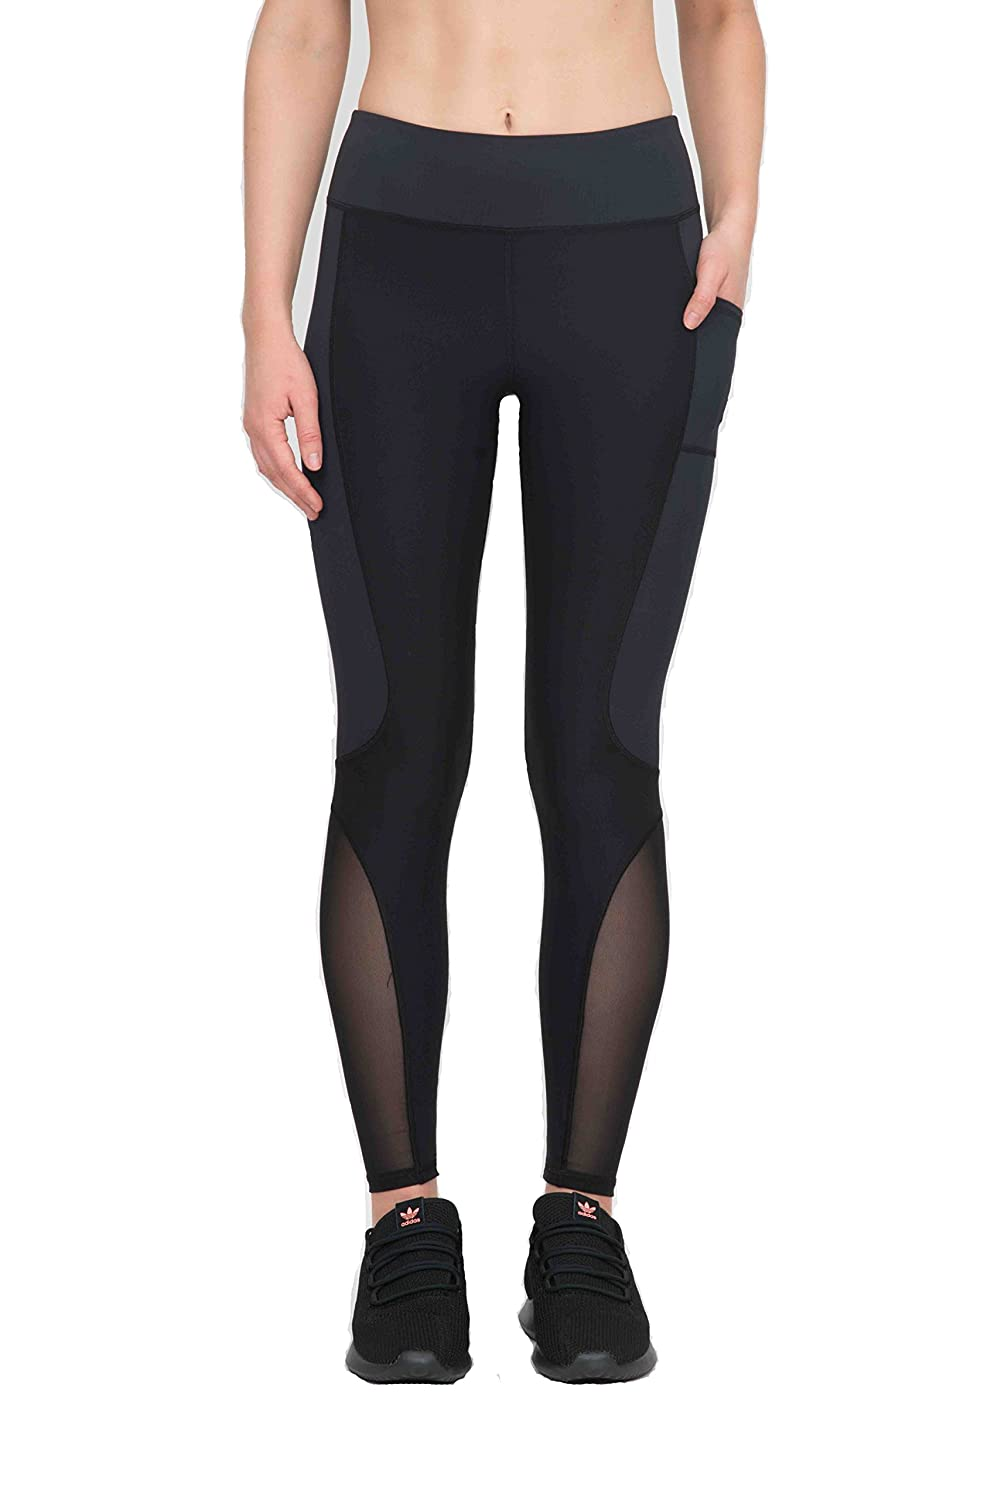 3714a673ea FLEXIBLE ATHLETIC WEAR – These trendy yoga legging pants are your perfect  companion for working out in the gym or taking a class. Be it running,  yoga, ...